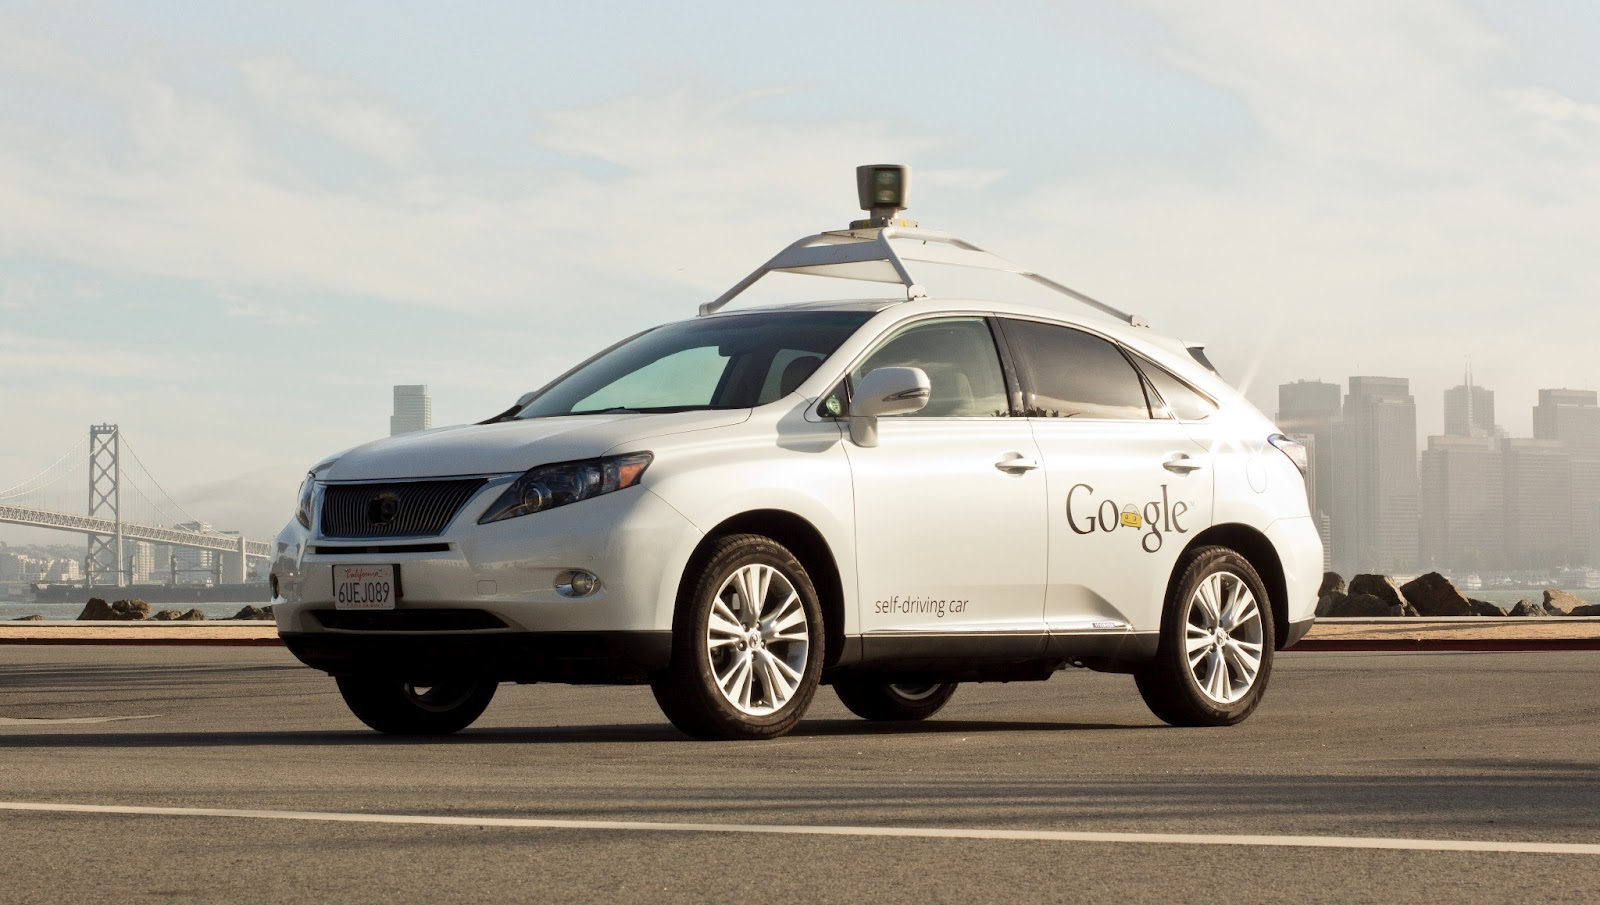 Reports have Google developing own autonomous car